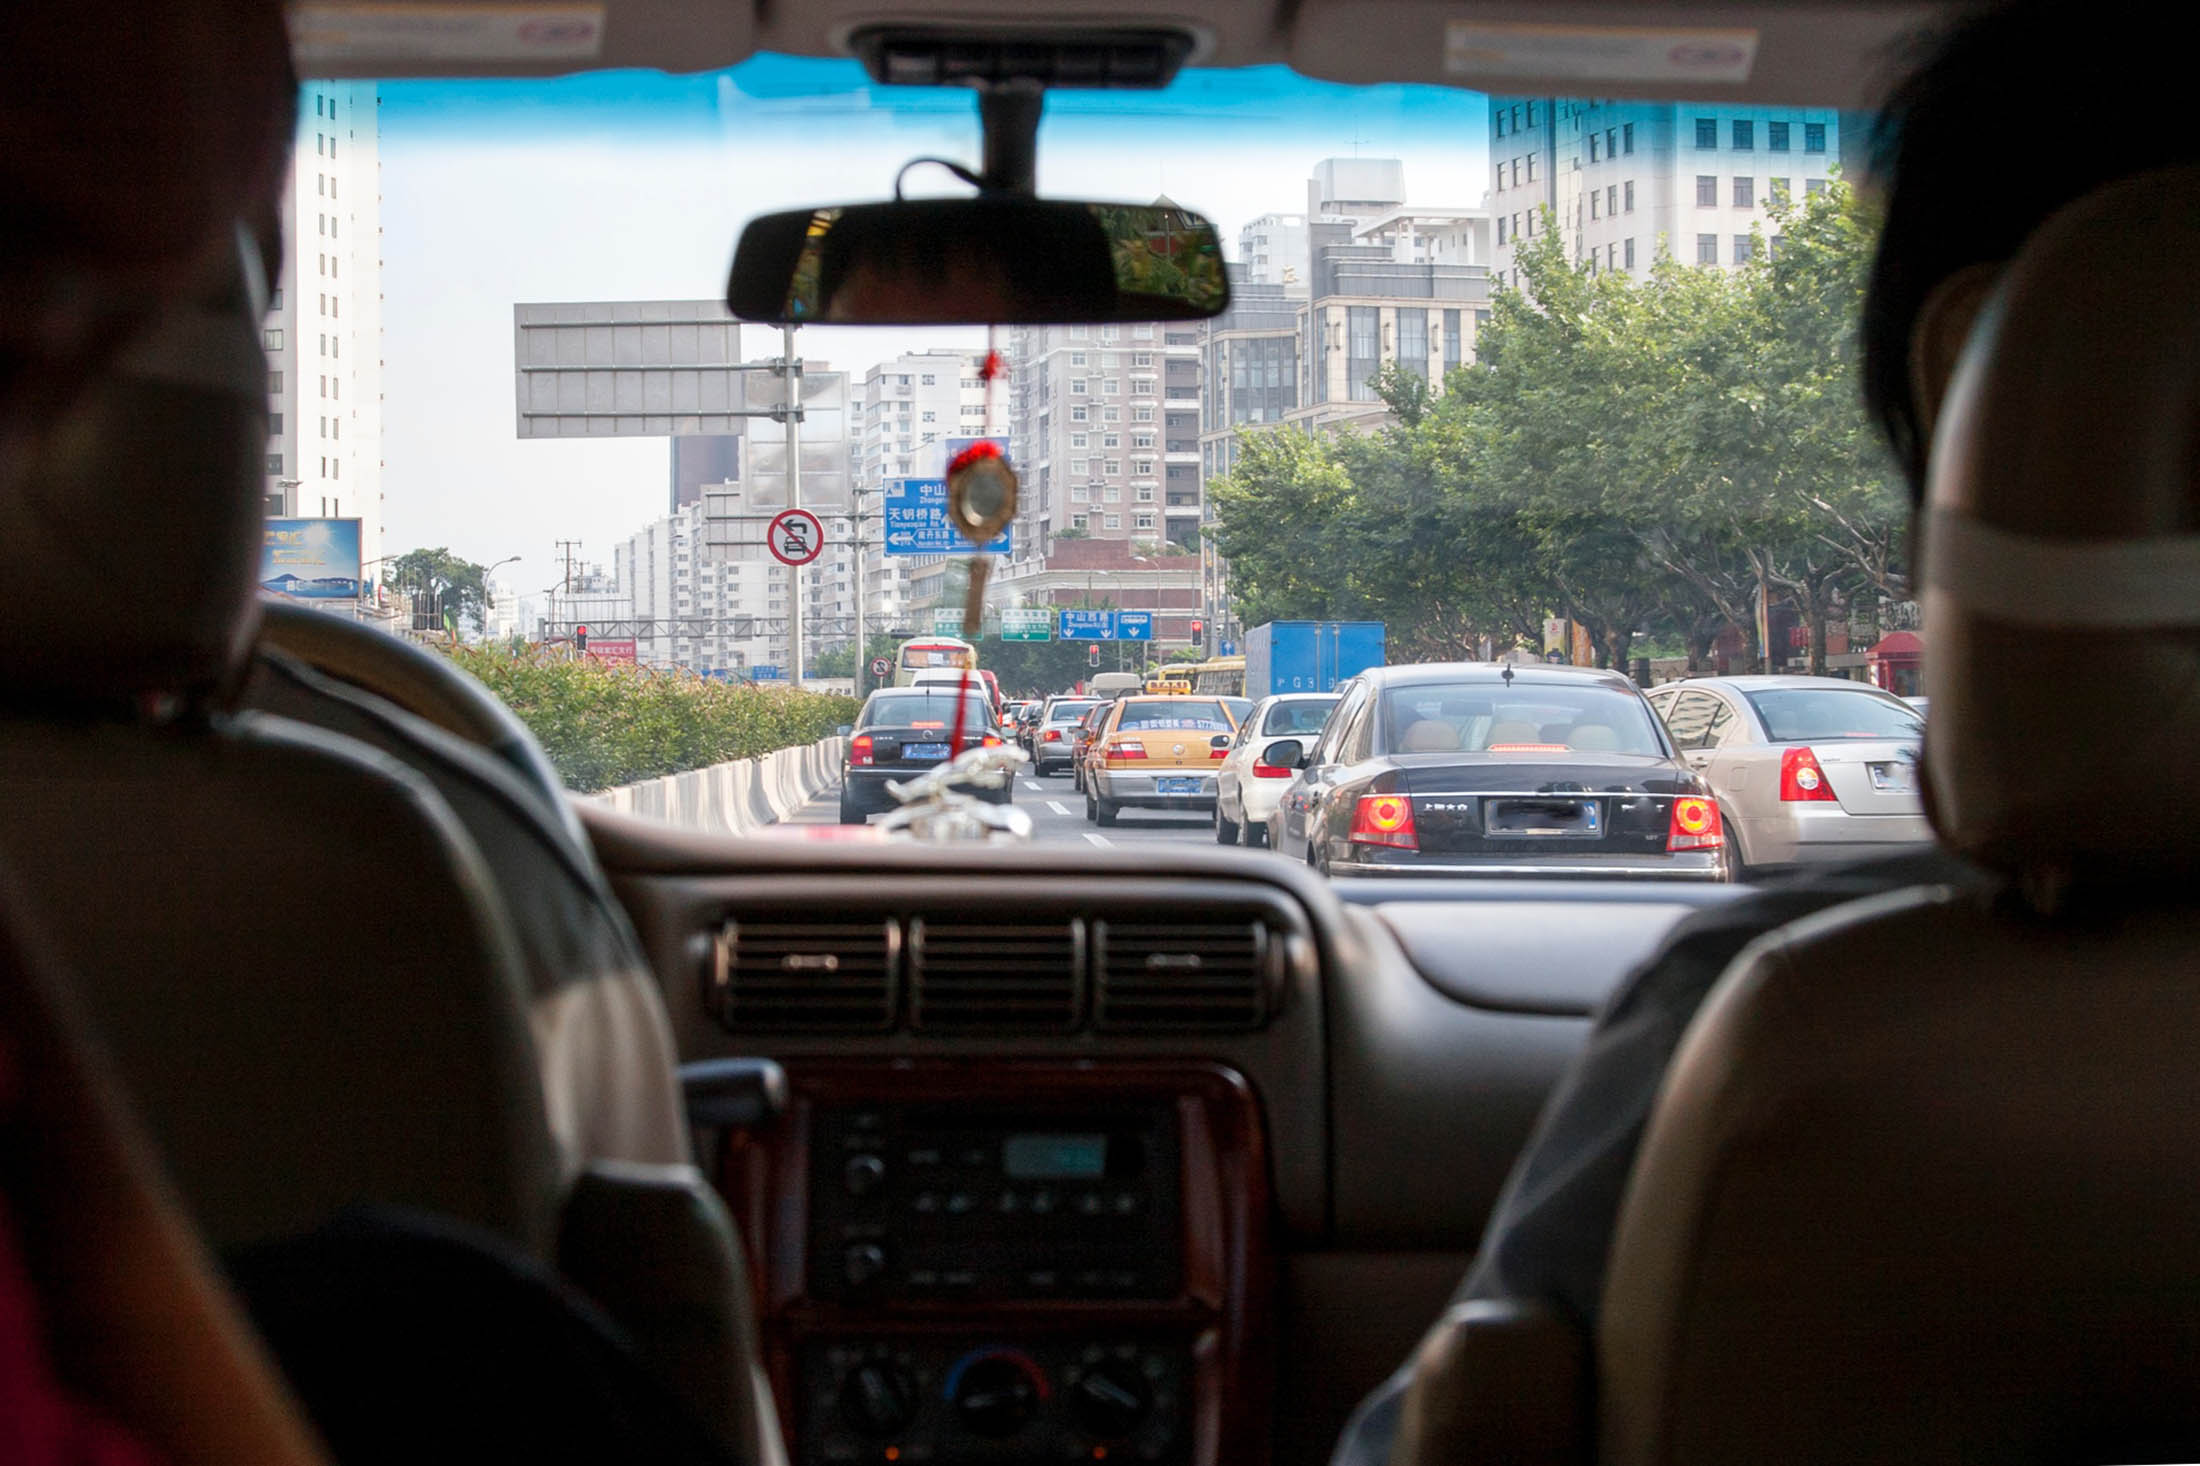 Apple Backs Didi With $1 Billion in Blow to Uber in China - Bloomberg